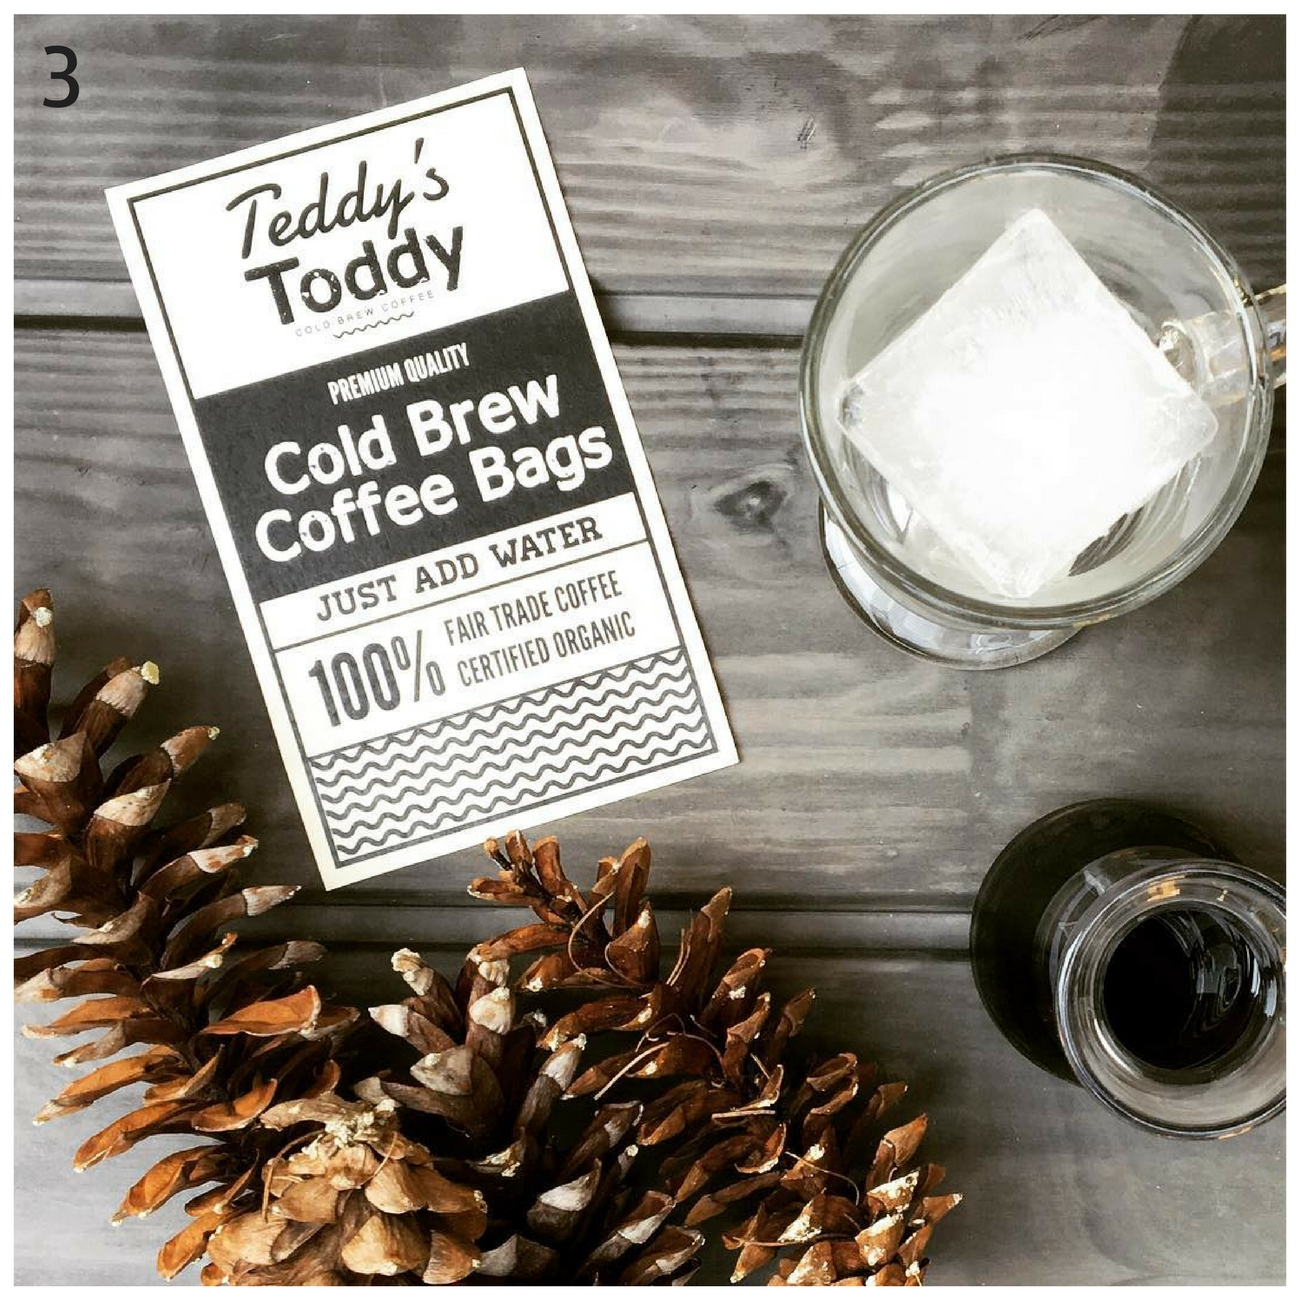 #3 - Ever heard about cold-brew coffee? If not, you should take a look at Teddy's Toddy. We'll have the full scoop for ya in the Eat & Drink section on the site. / Image: IG user @teddystoddy